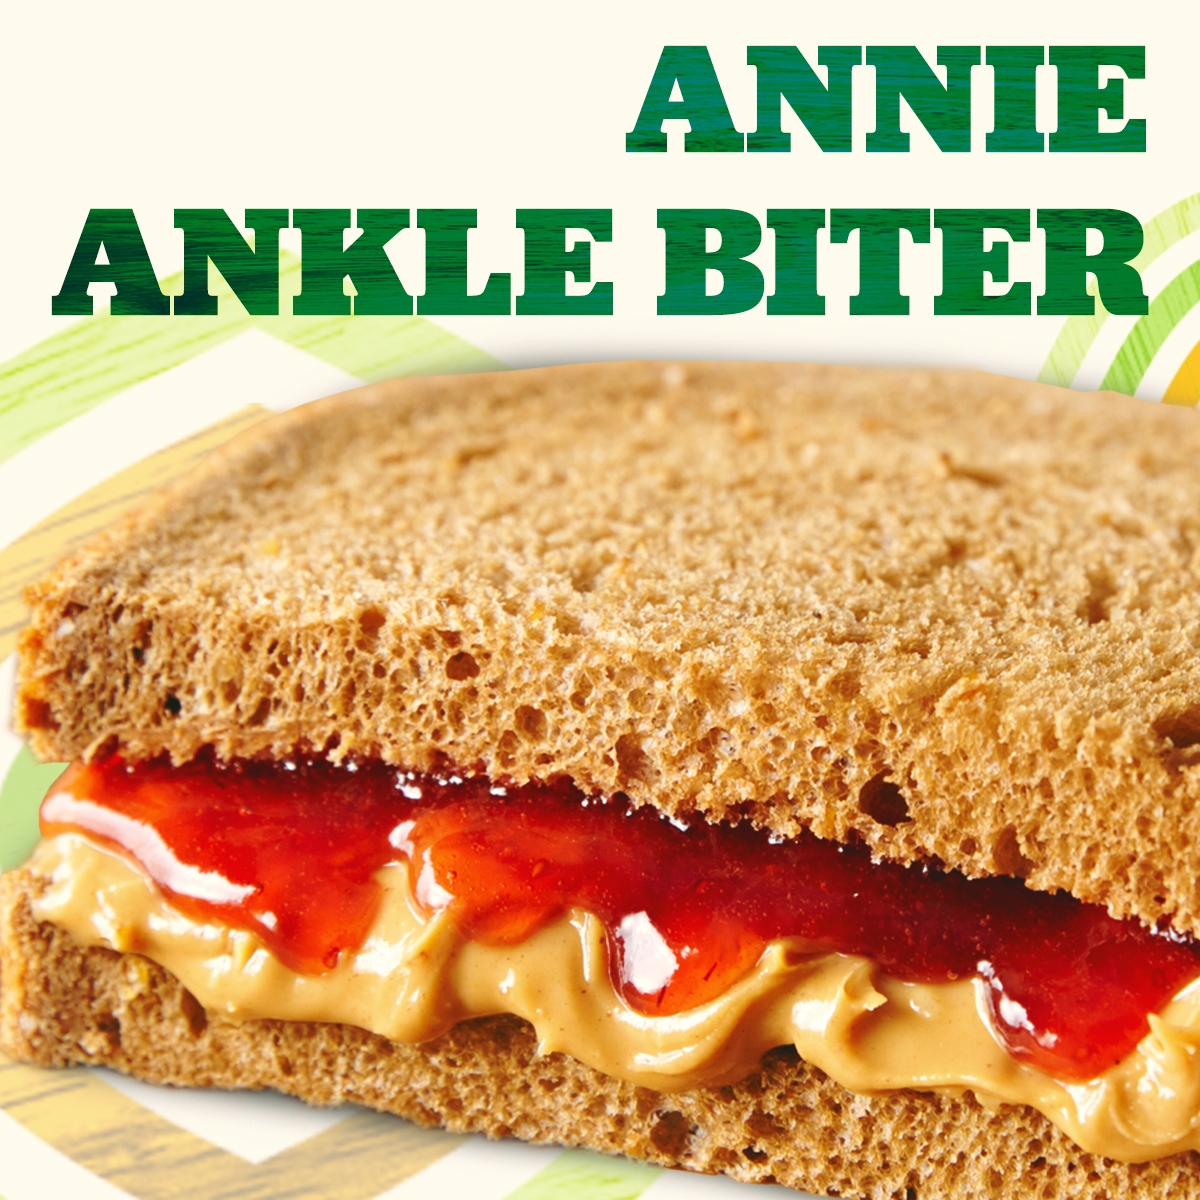 Celebrate #PeanutButterLoversDay with an Annie Ankle Biter for your little peanut.  Half a peanut butter and strawberry preserves sandwich on hearty 9-grain bread.    #eriksdelicafe #food #lunch #dinner #delicious #sandwich #bayarea #peanutbutter #peanutbutterandjelly #kidsmeals